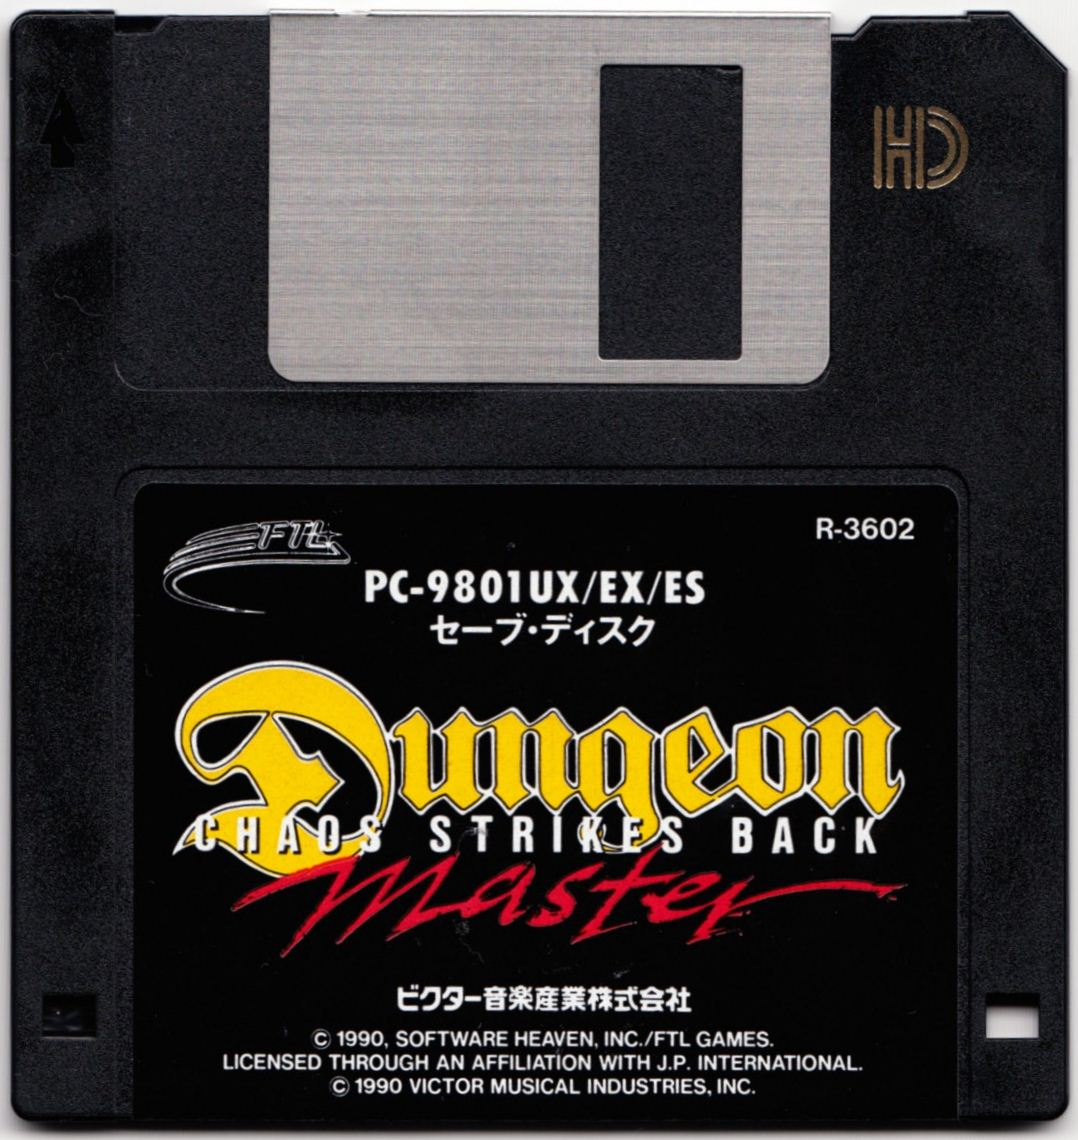 Game - Chaos Strikes Back - JP - PC-9801 - 3.5-inch - Save Disk - Front - Scan